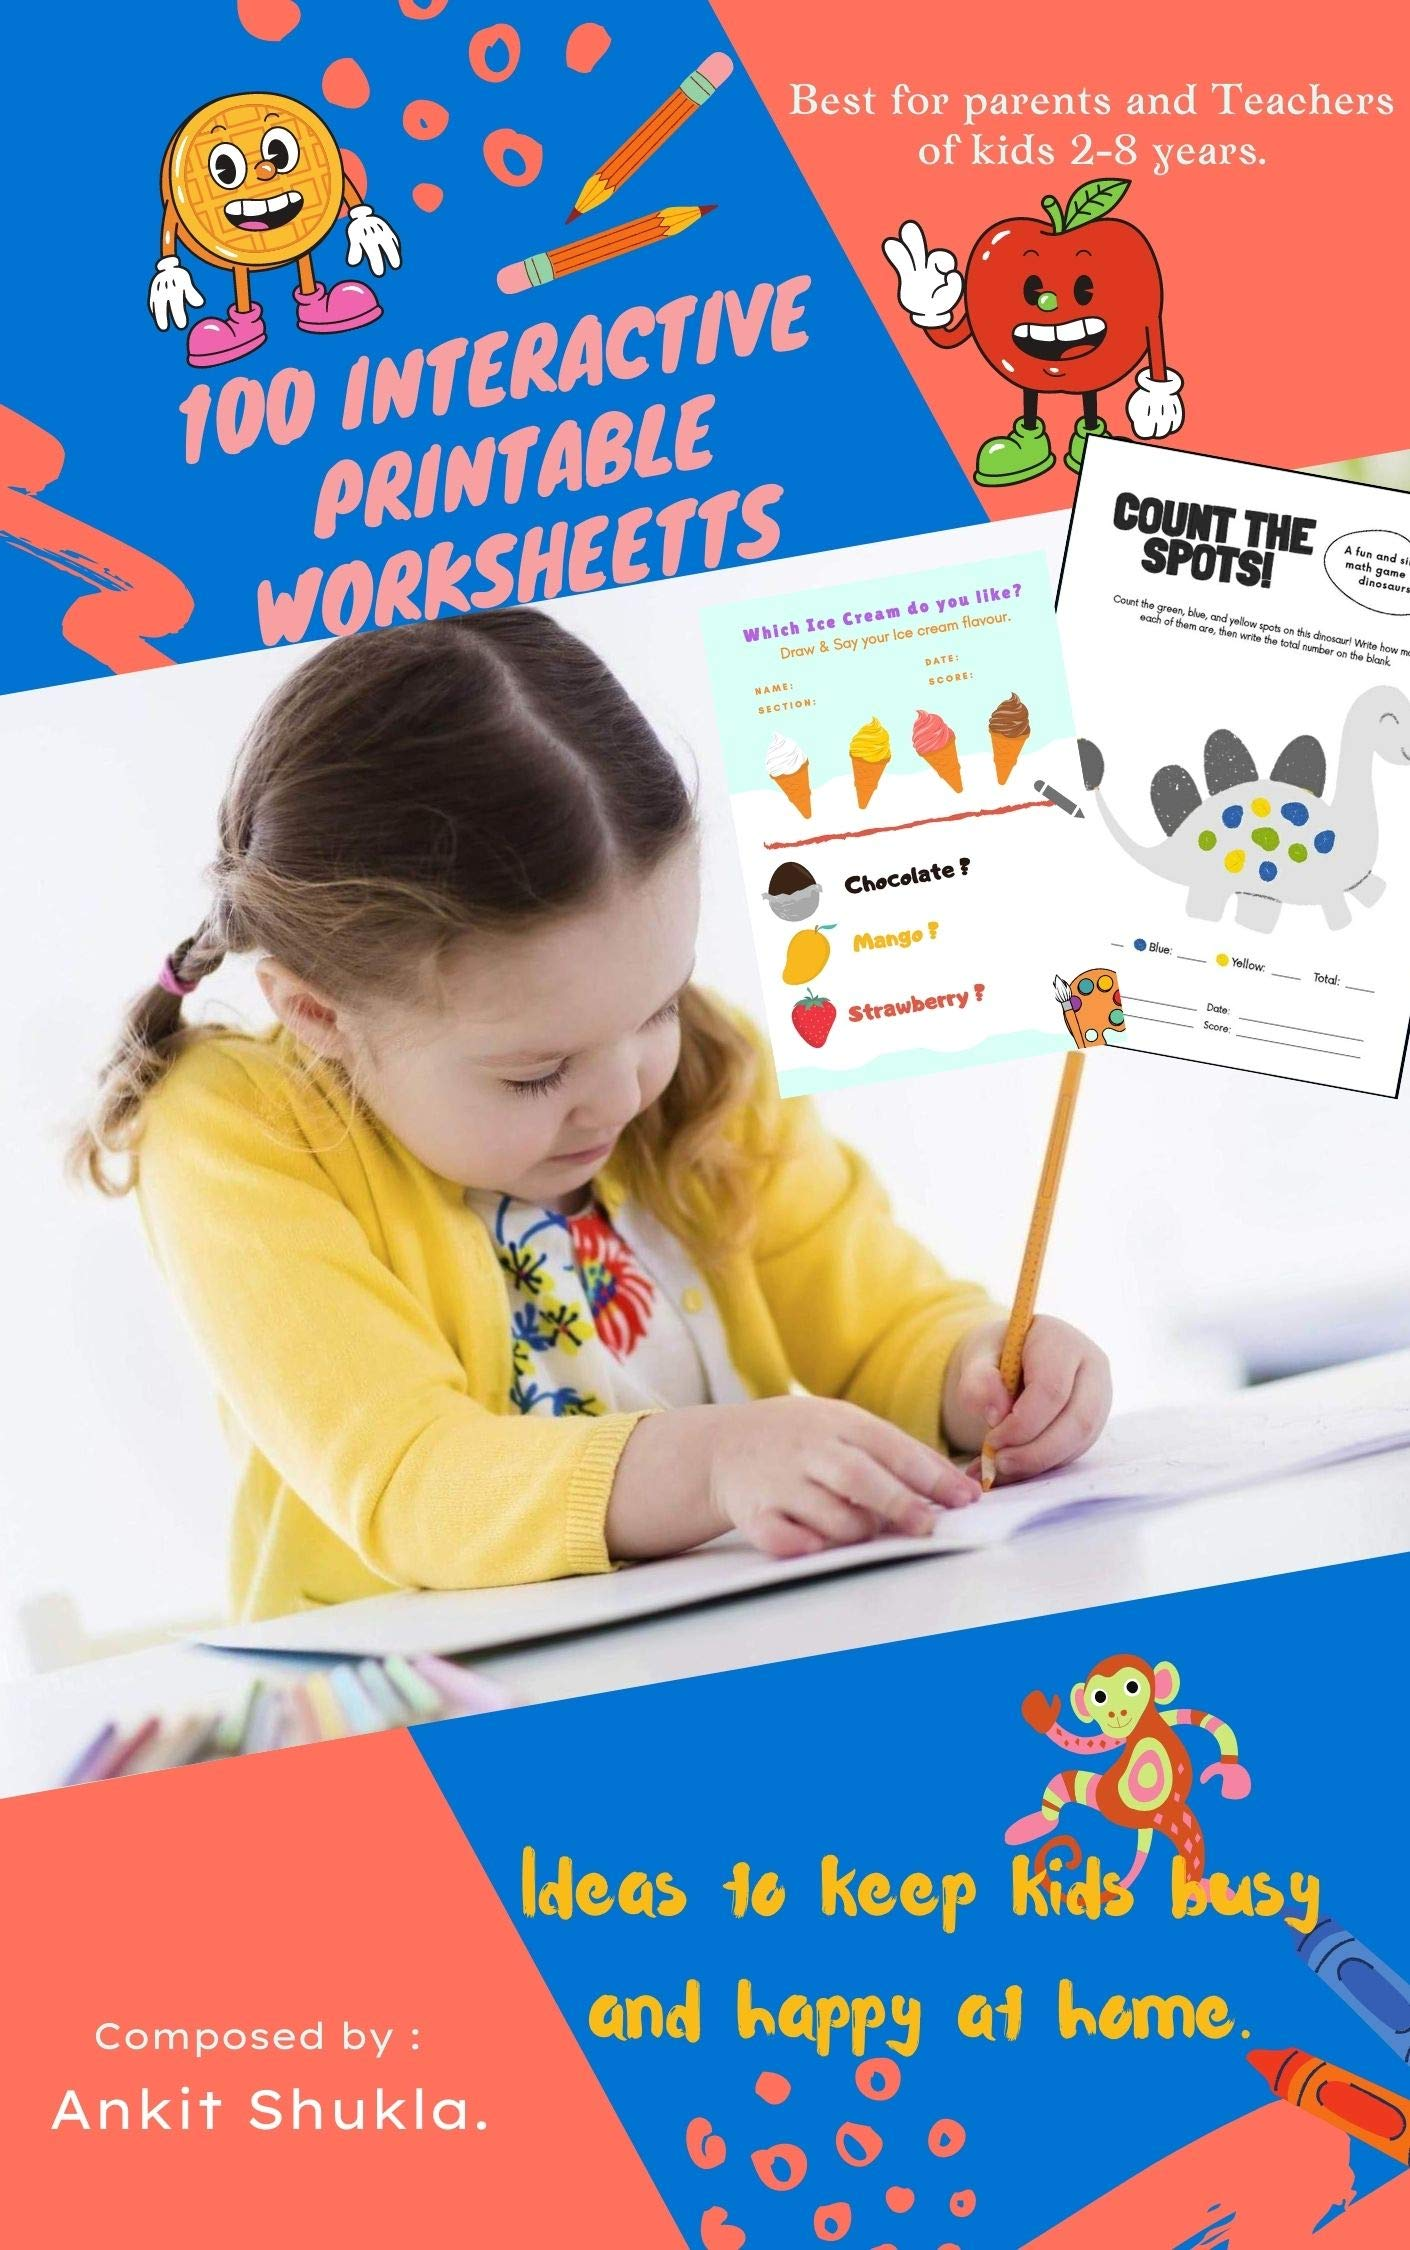 Workbook of 100 colourful printable worksheets for Ages 2-5(Nursery/KG): Jungle Theme worksheets designed to learn Math, Alphabet, Colours, Animals, Our Body and Art. Tips and Tricks to teach kids.